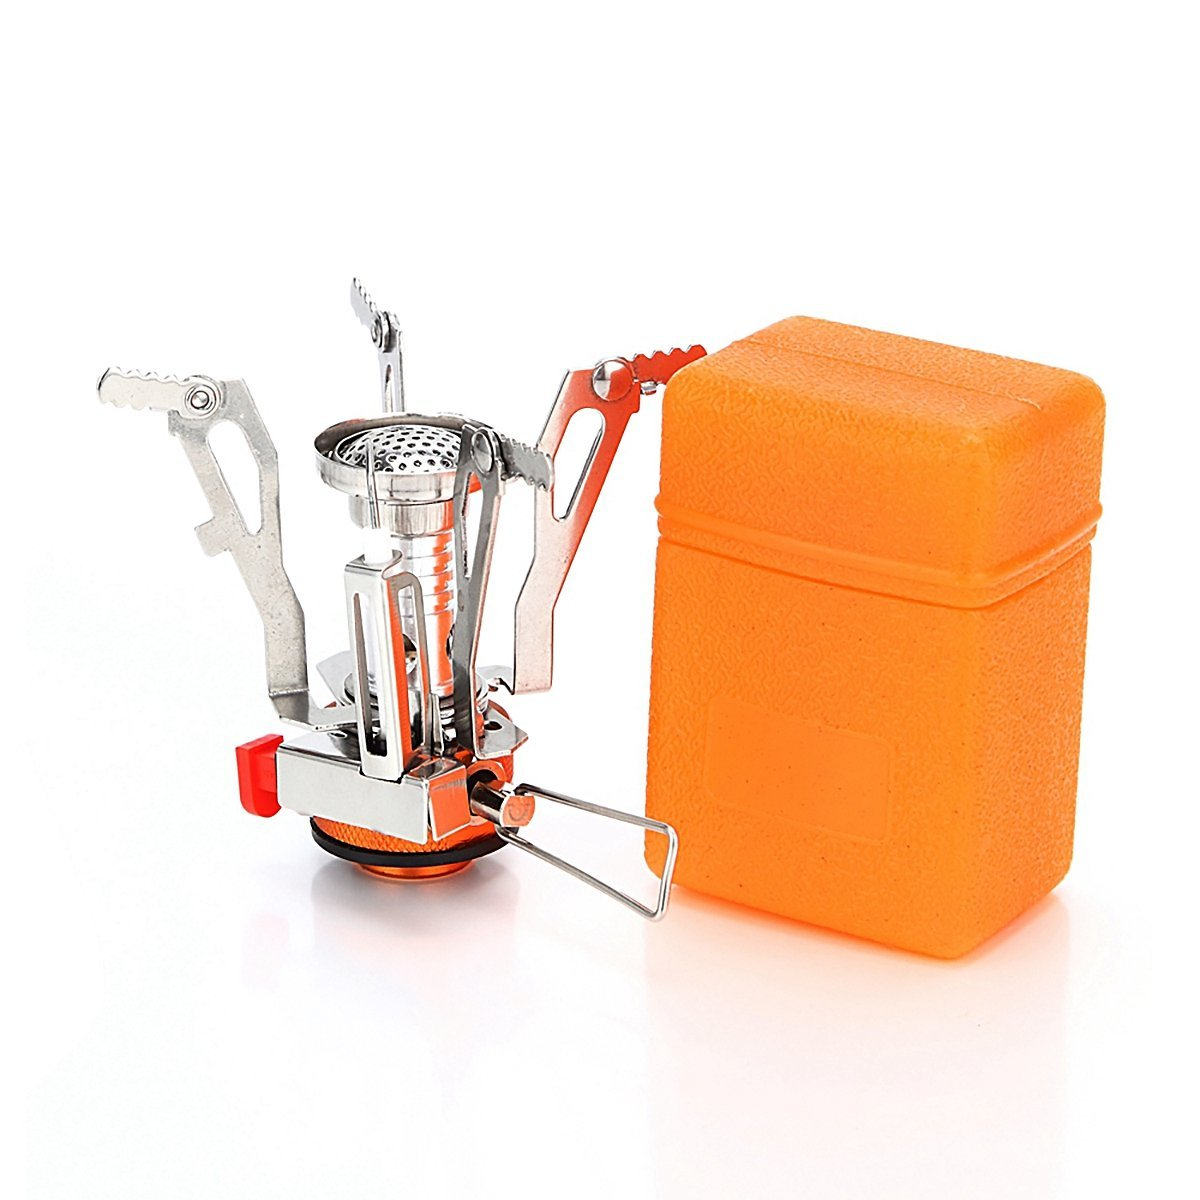 Ultralight Collapsible Portable Folding Camping Stoves Mini Burners Stoves Outdoor Backpacking Stoves